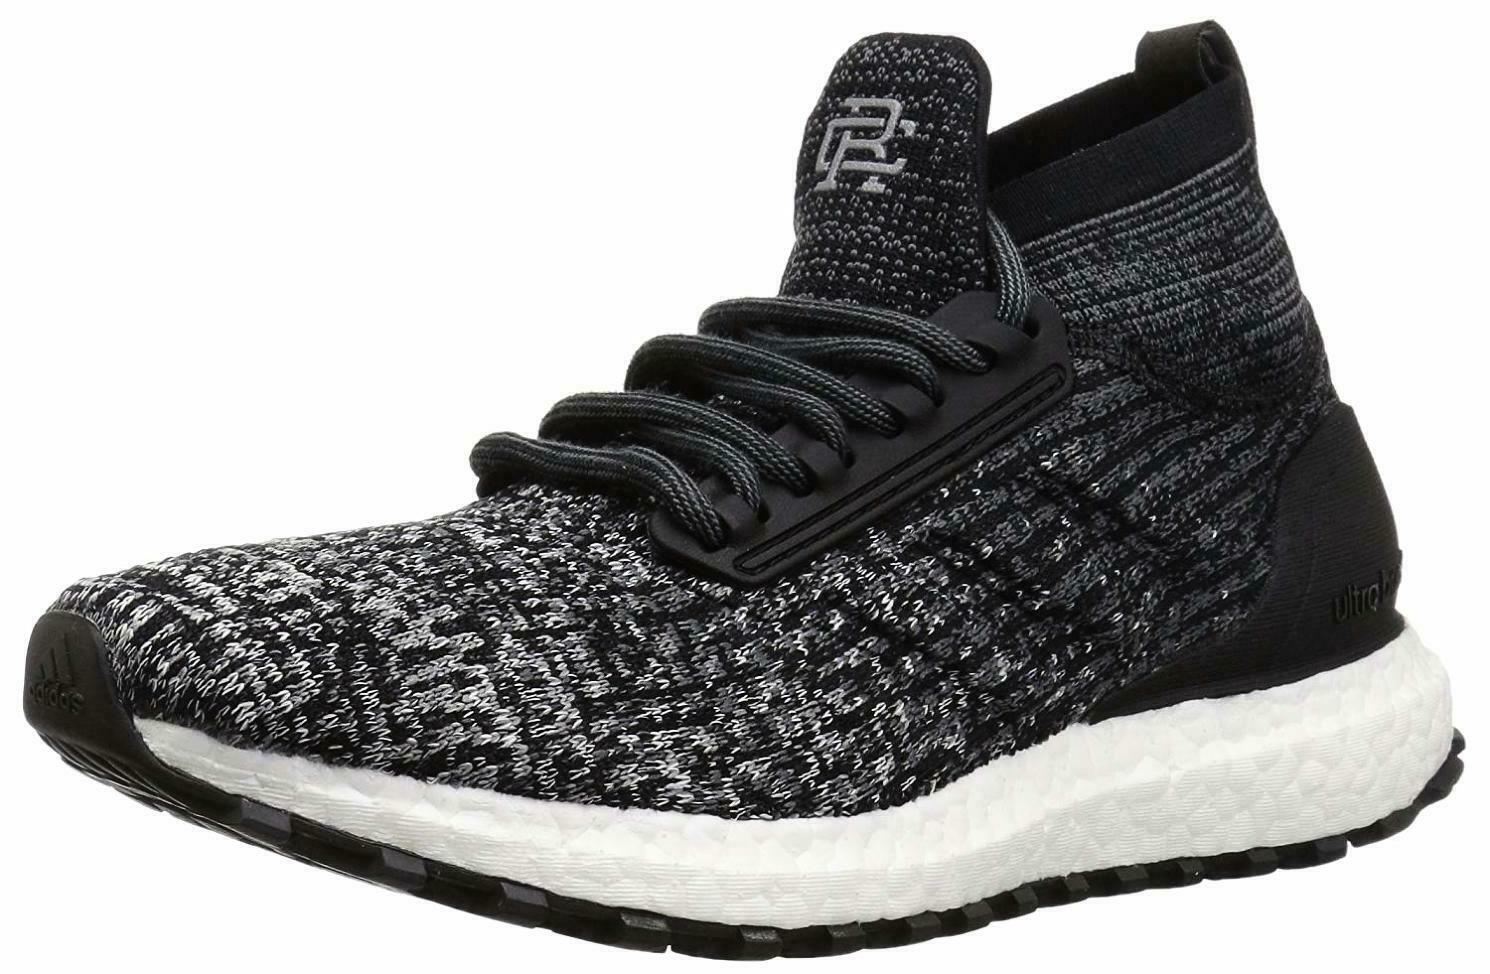 6b059268322 Adidas X Reigning Champ UltraBOOST All Terrain shoes - Choose SZ color